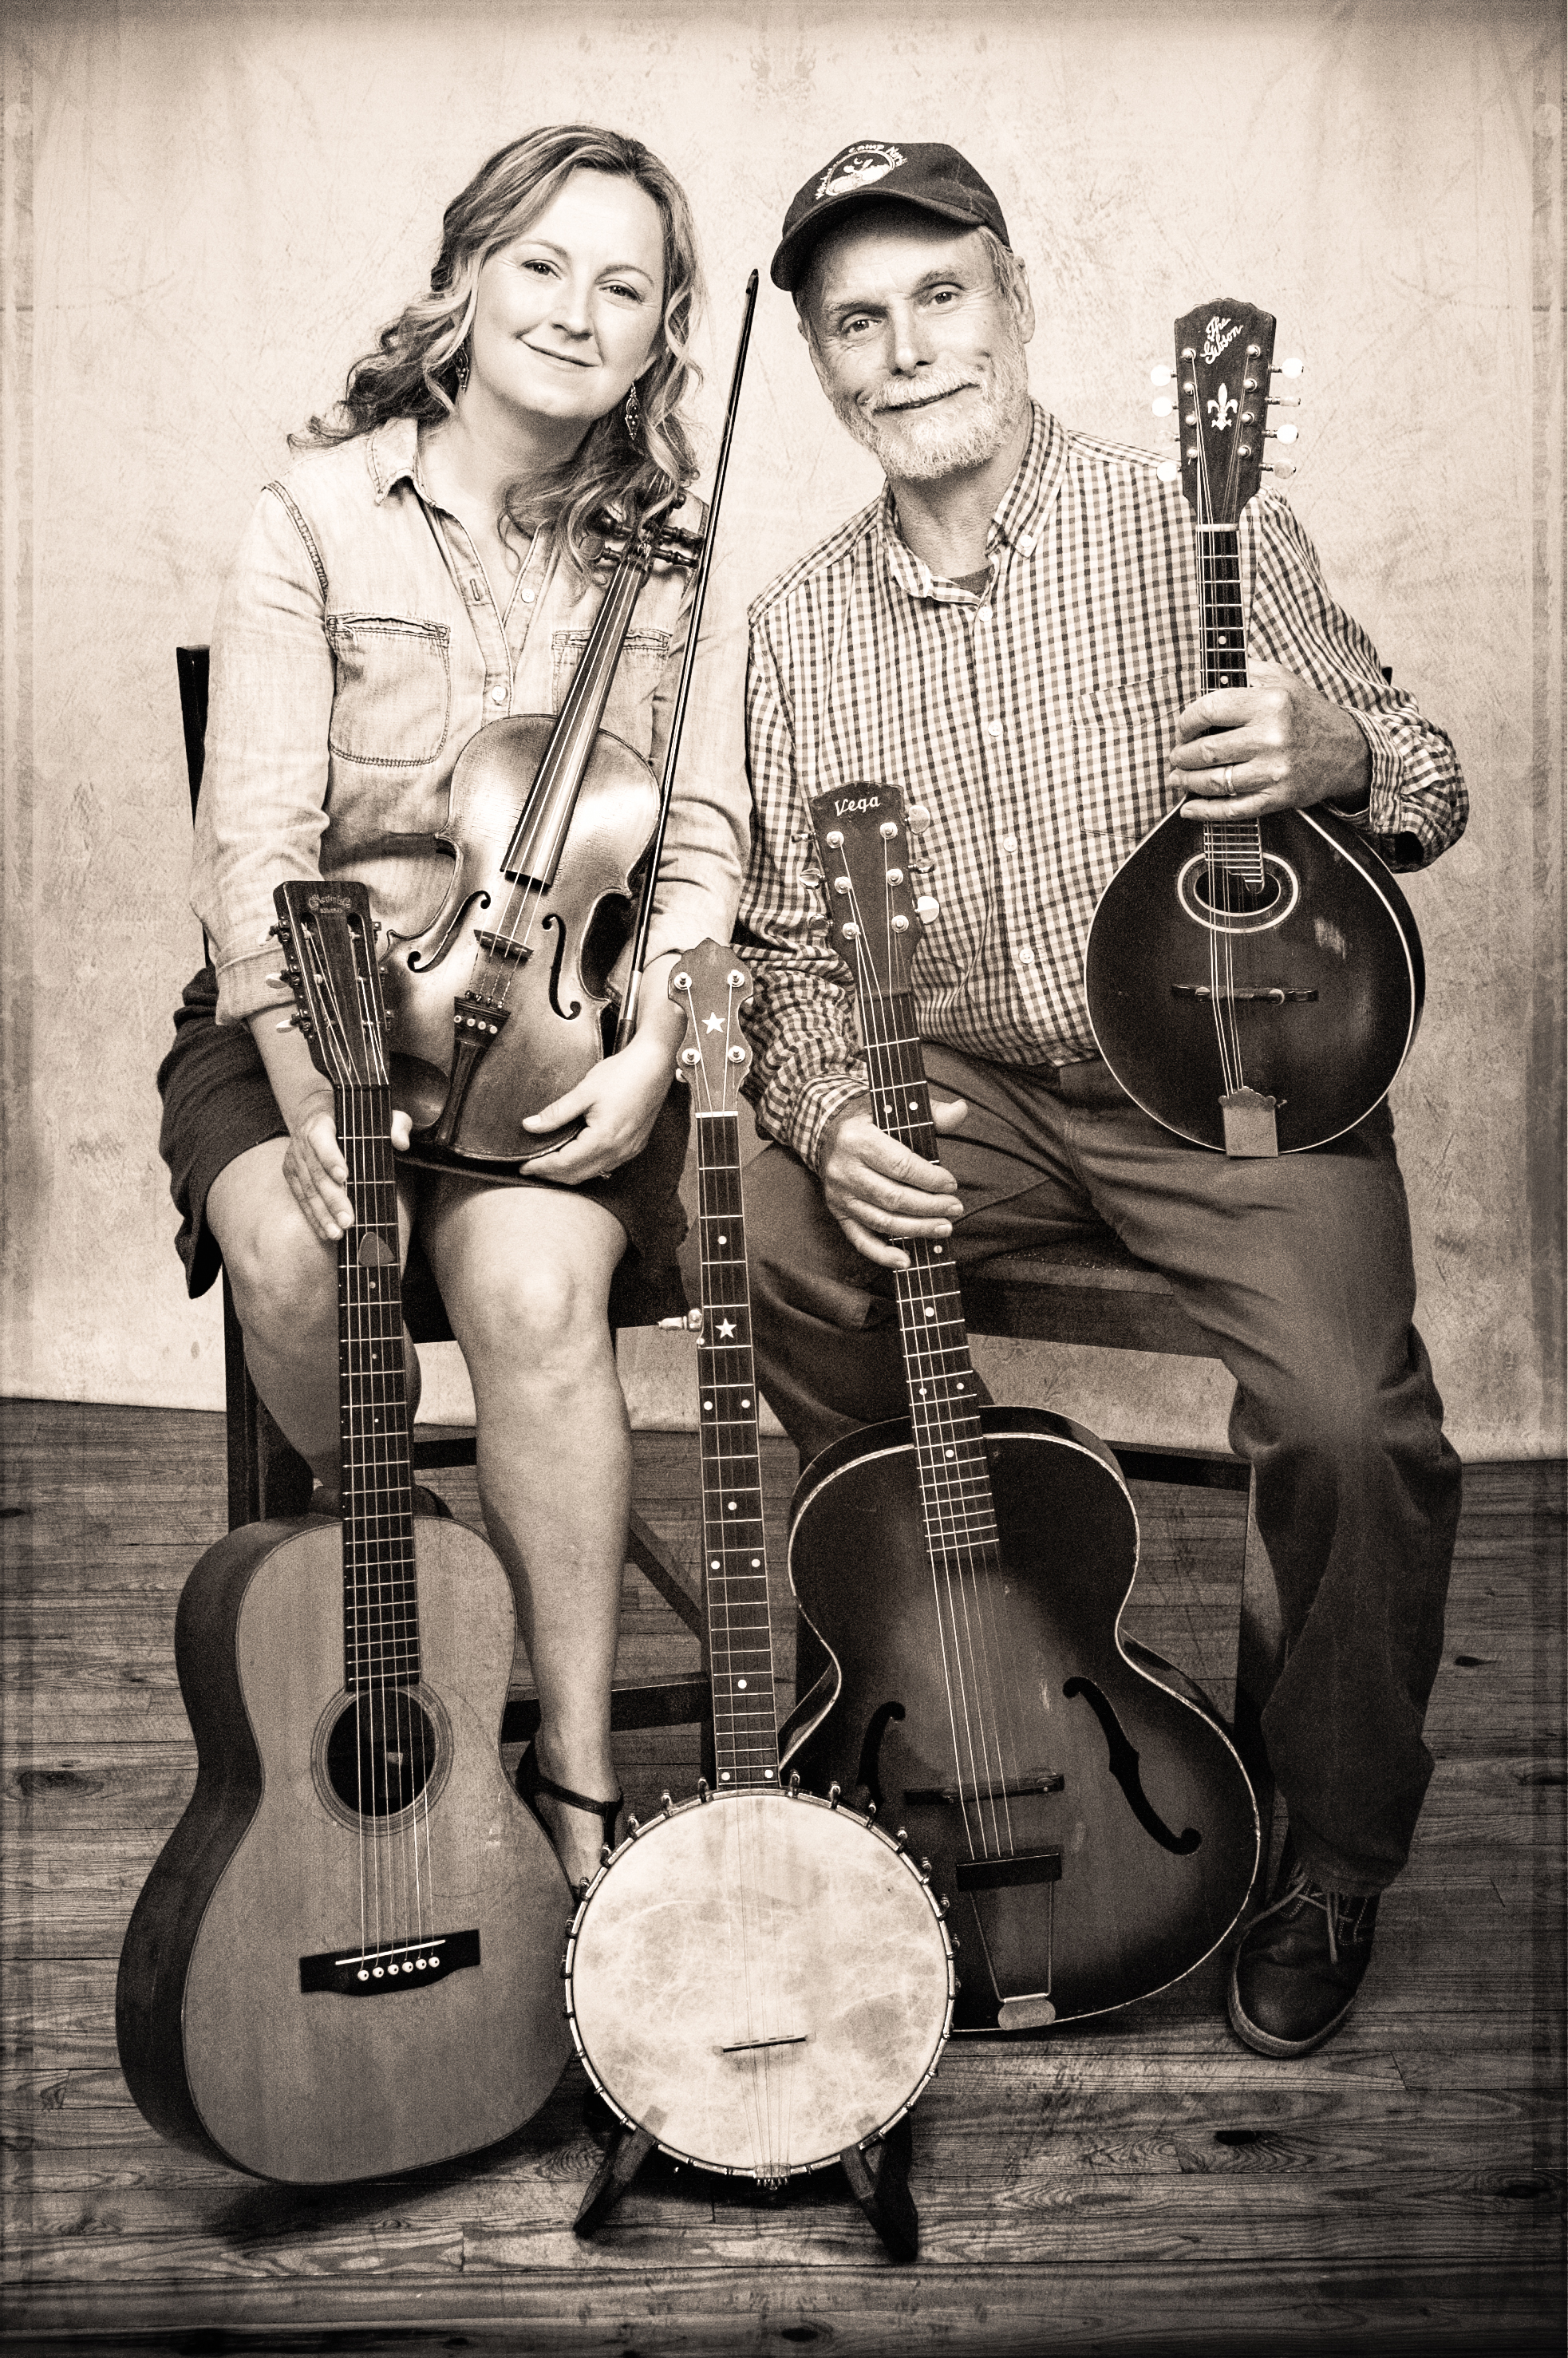 Erynn & Carl 2015 w 5 instruments bw hr_Moser & Jackson Photography copy[28185].jpg